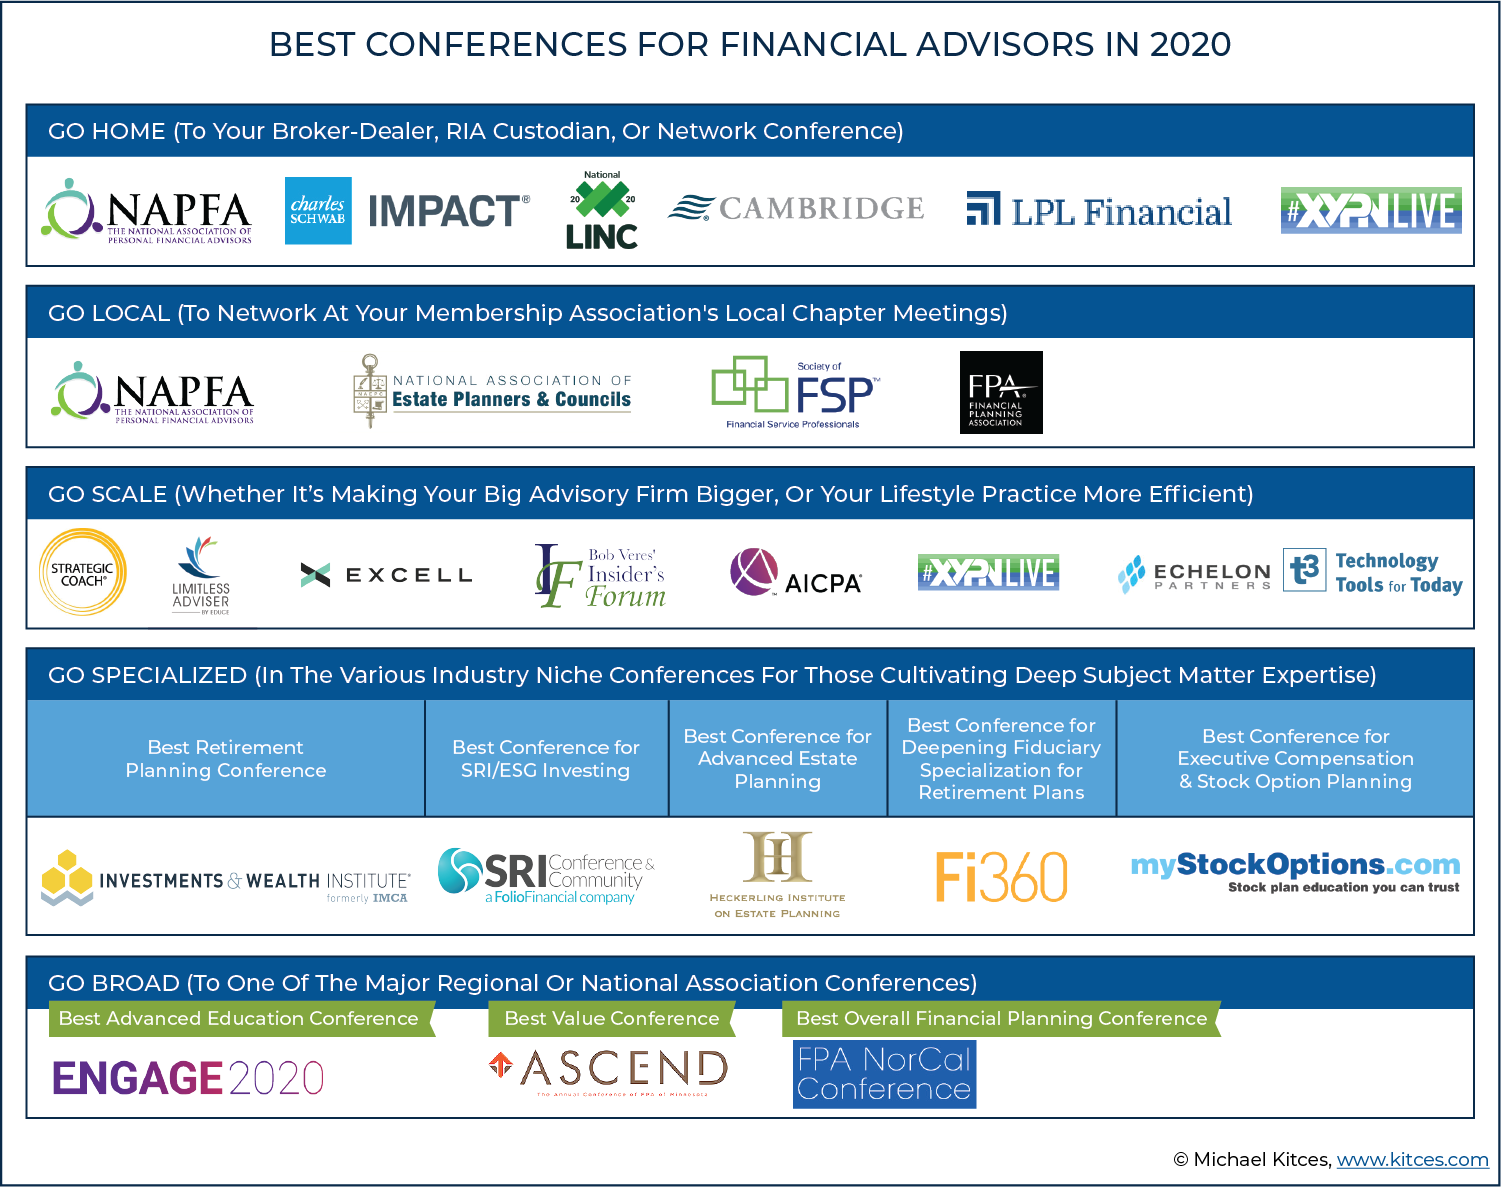 Best Conferences For Financial Advisors In 2020